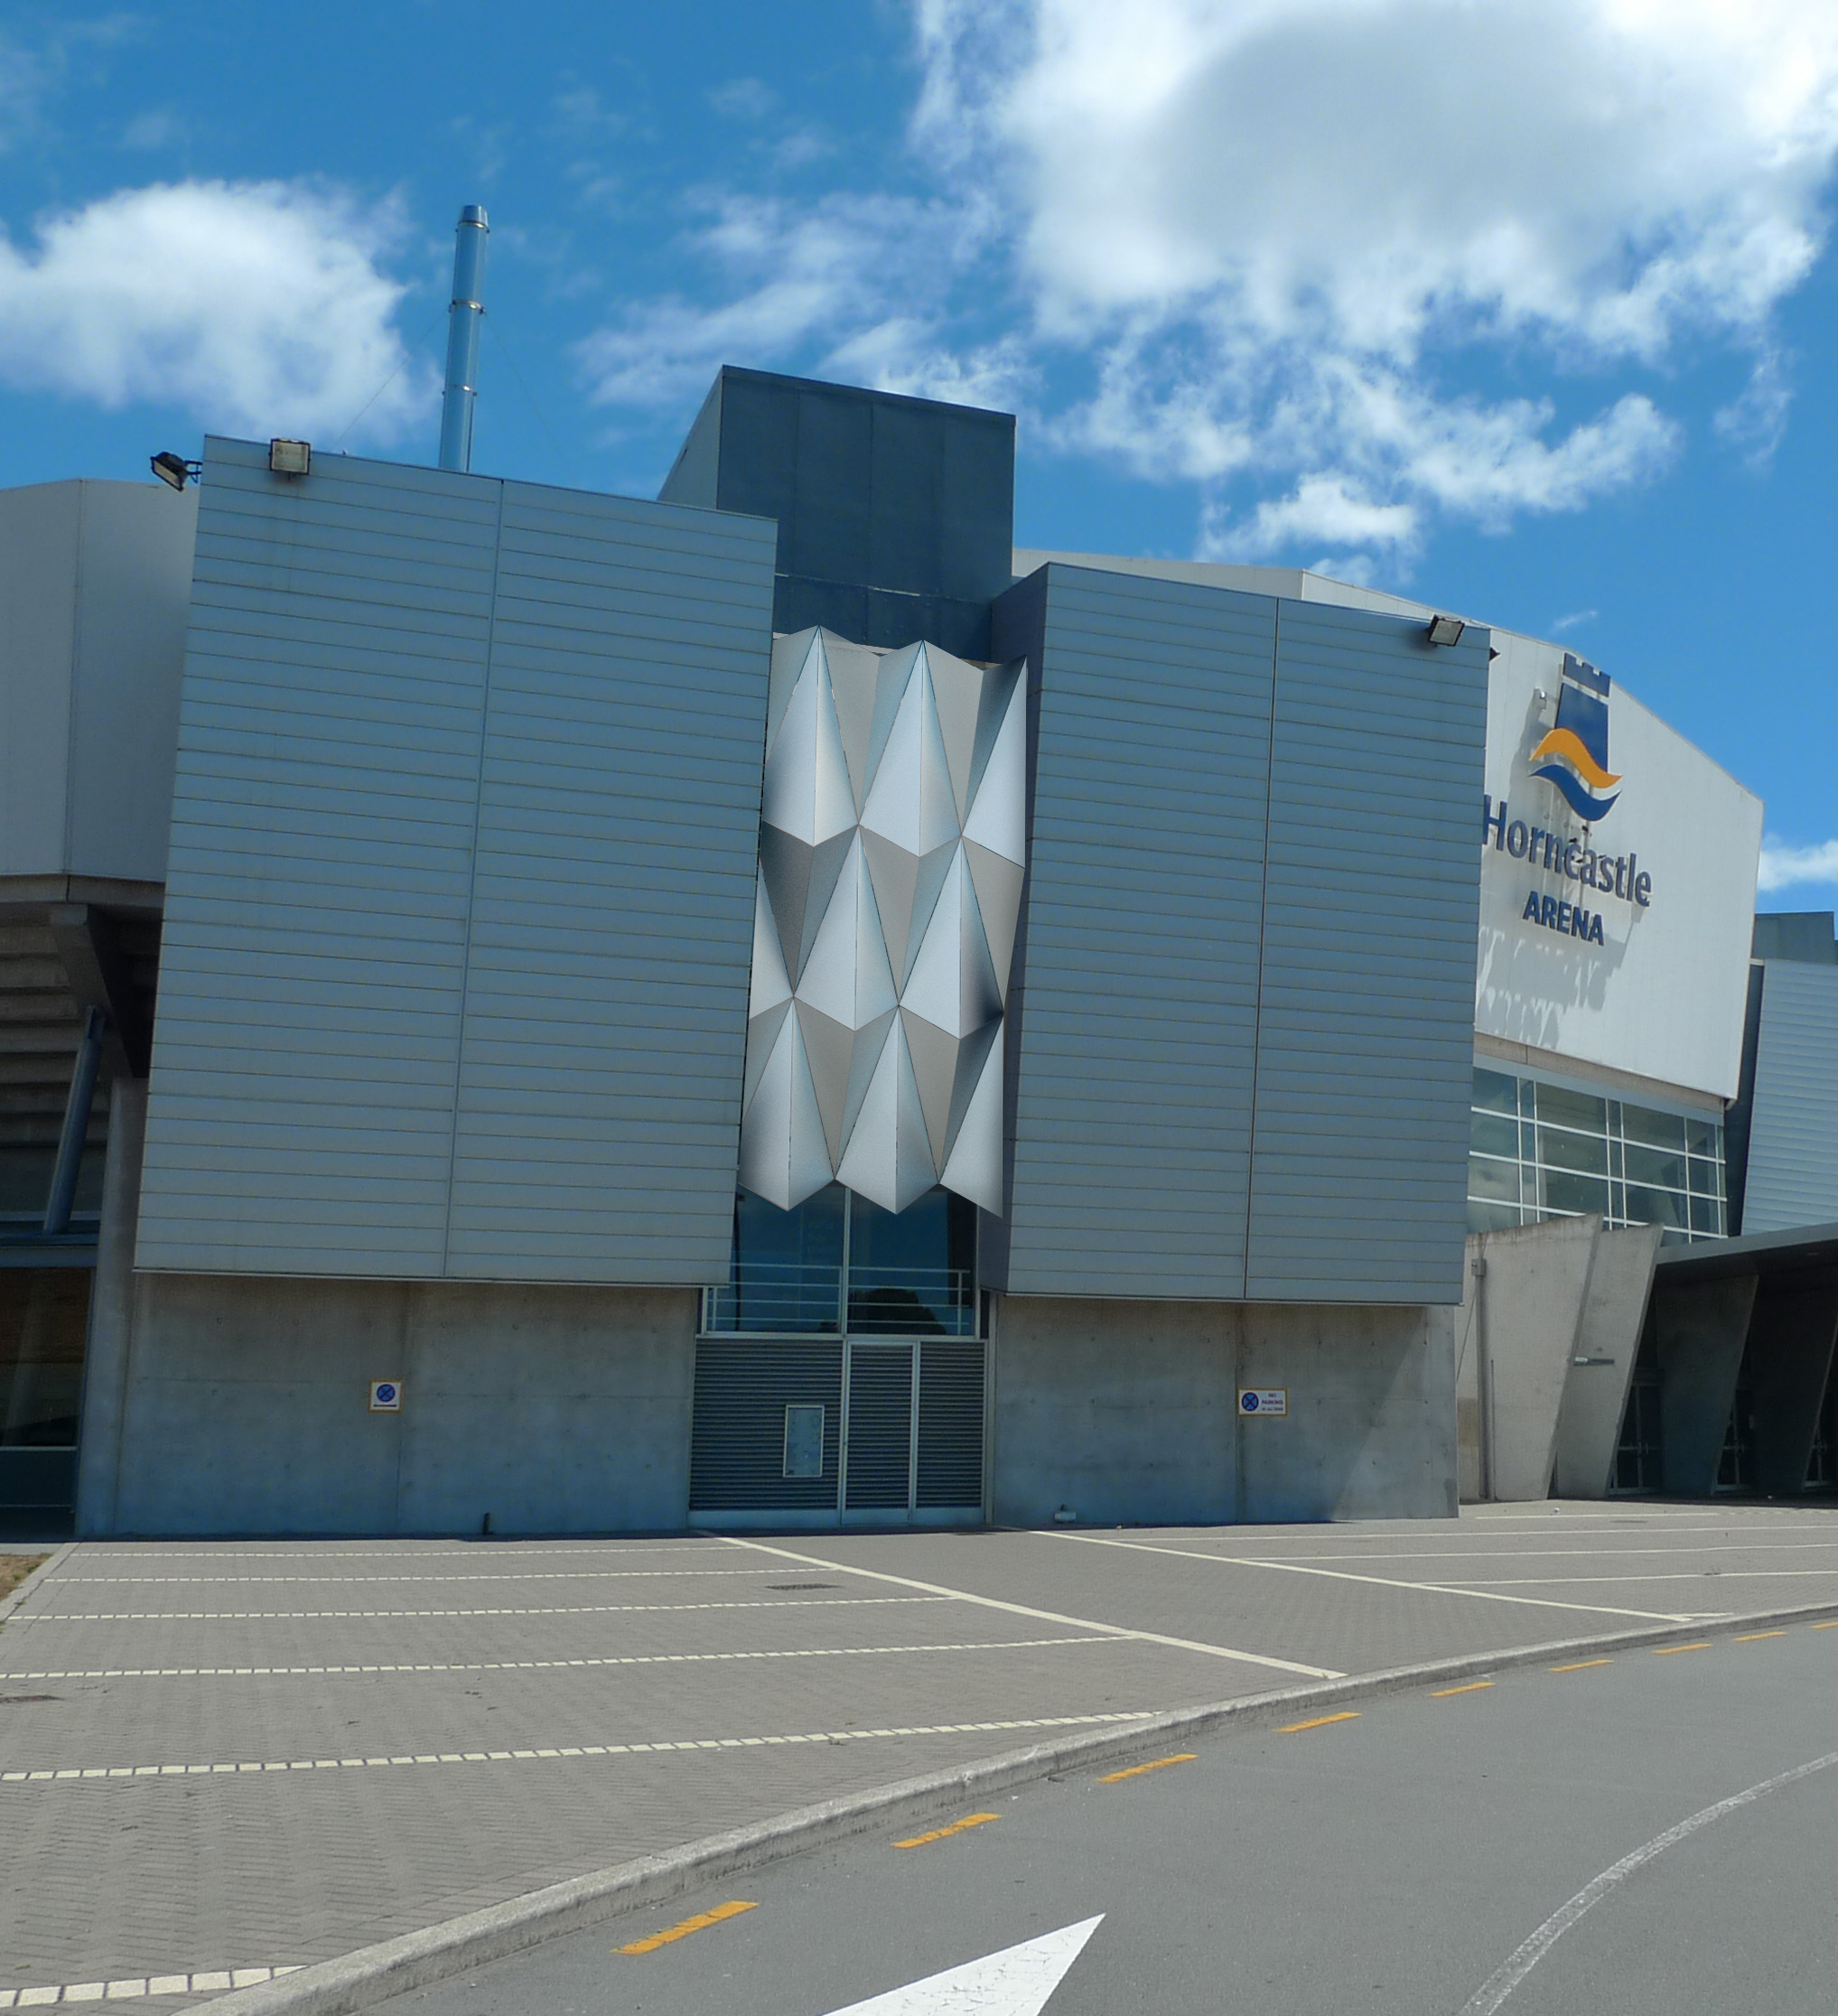 Horncastle Arena, Christchurch   Subsequent to the earthquakes in 2010/2011, this seismic strengthening project demonstrated S&T's ability to carry out complex works in a fully functioning sport and entertainment venue.